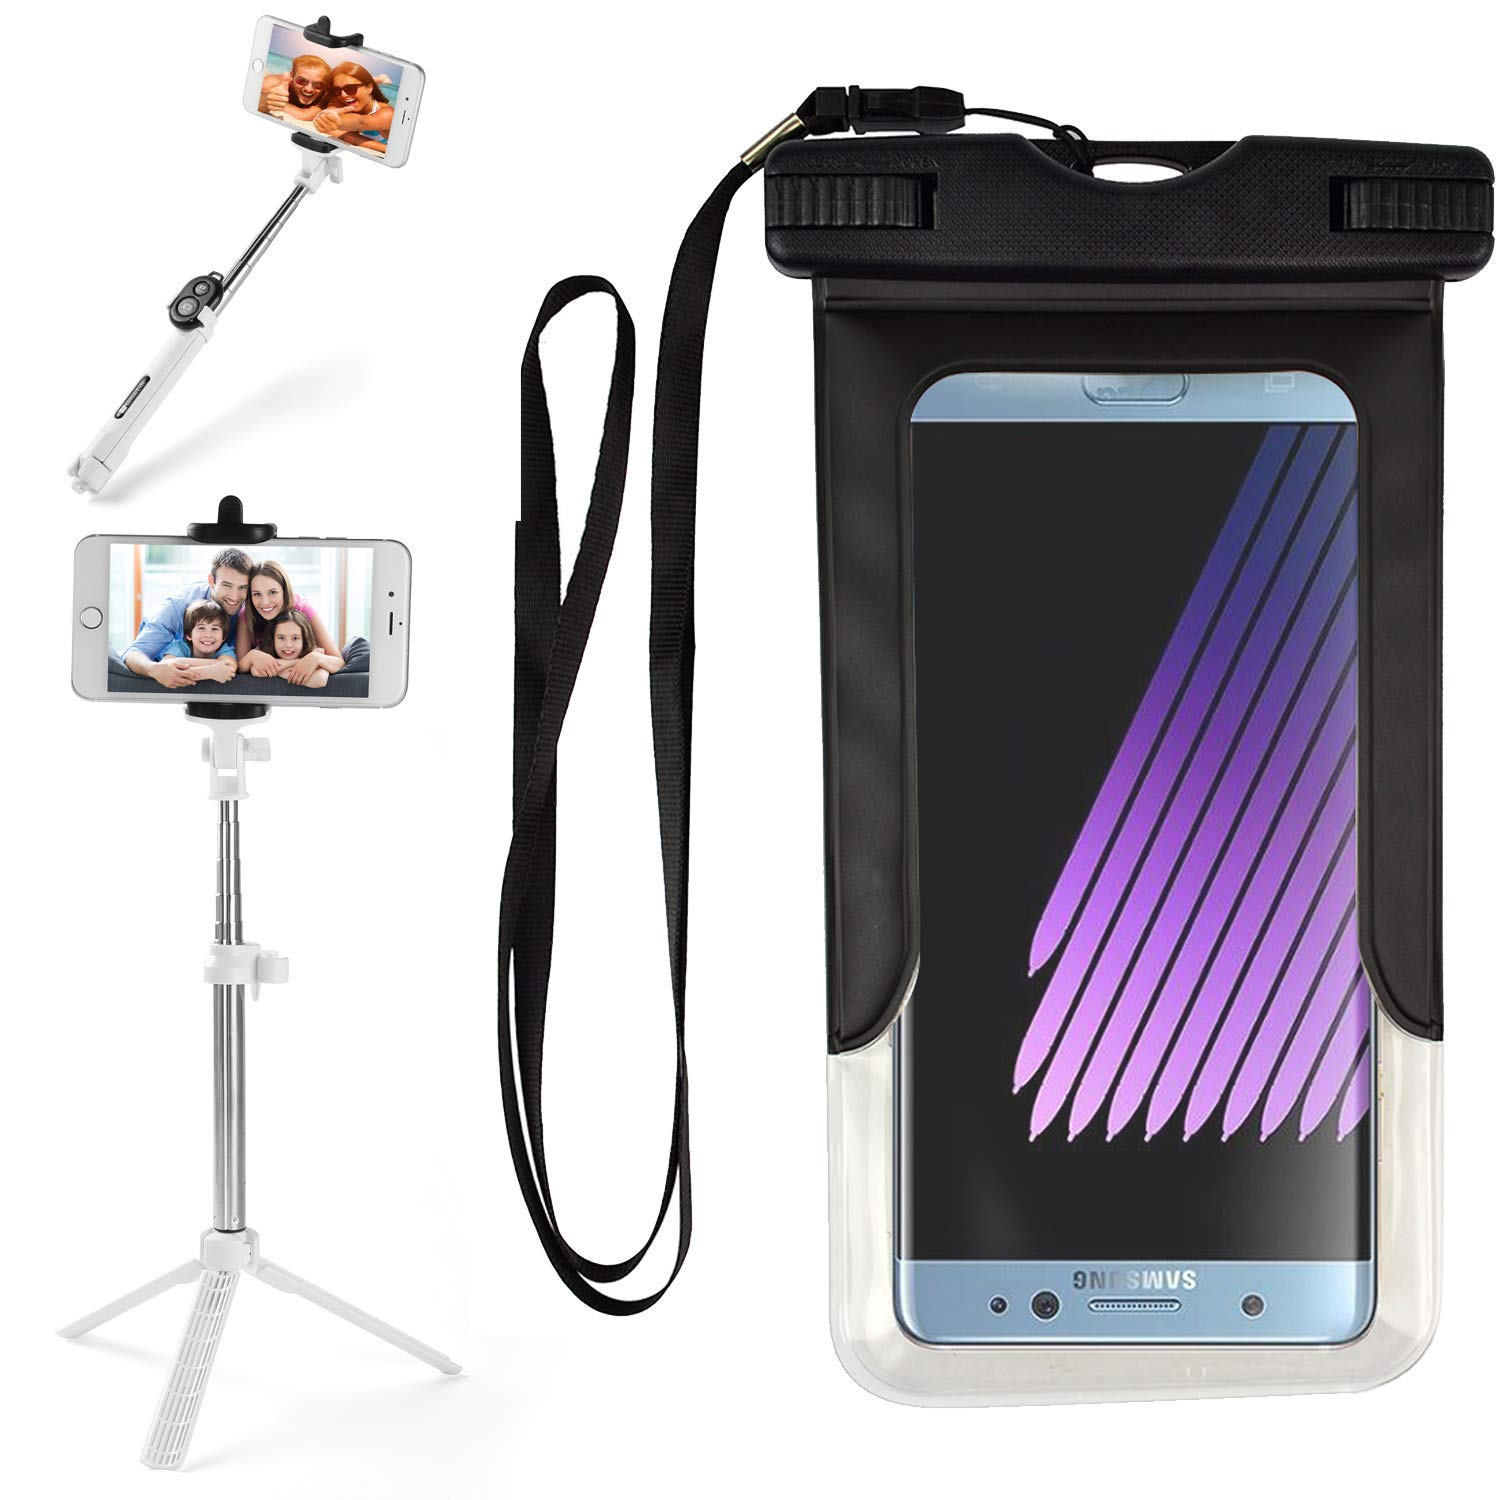 VG Case Selfie Photo Stick Bundle with Black Waterproof Cell Phone Armband Case Dry Bag Pouch for Motorola Moto G7, Plus, Power, Z3 Play, E5, Plus, Supra, G6, Play, Plus, Z2, G5s, E4